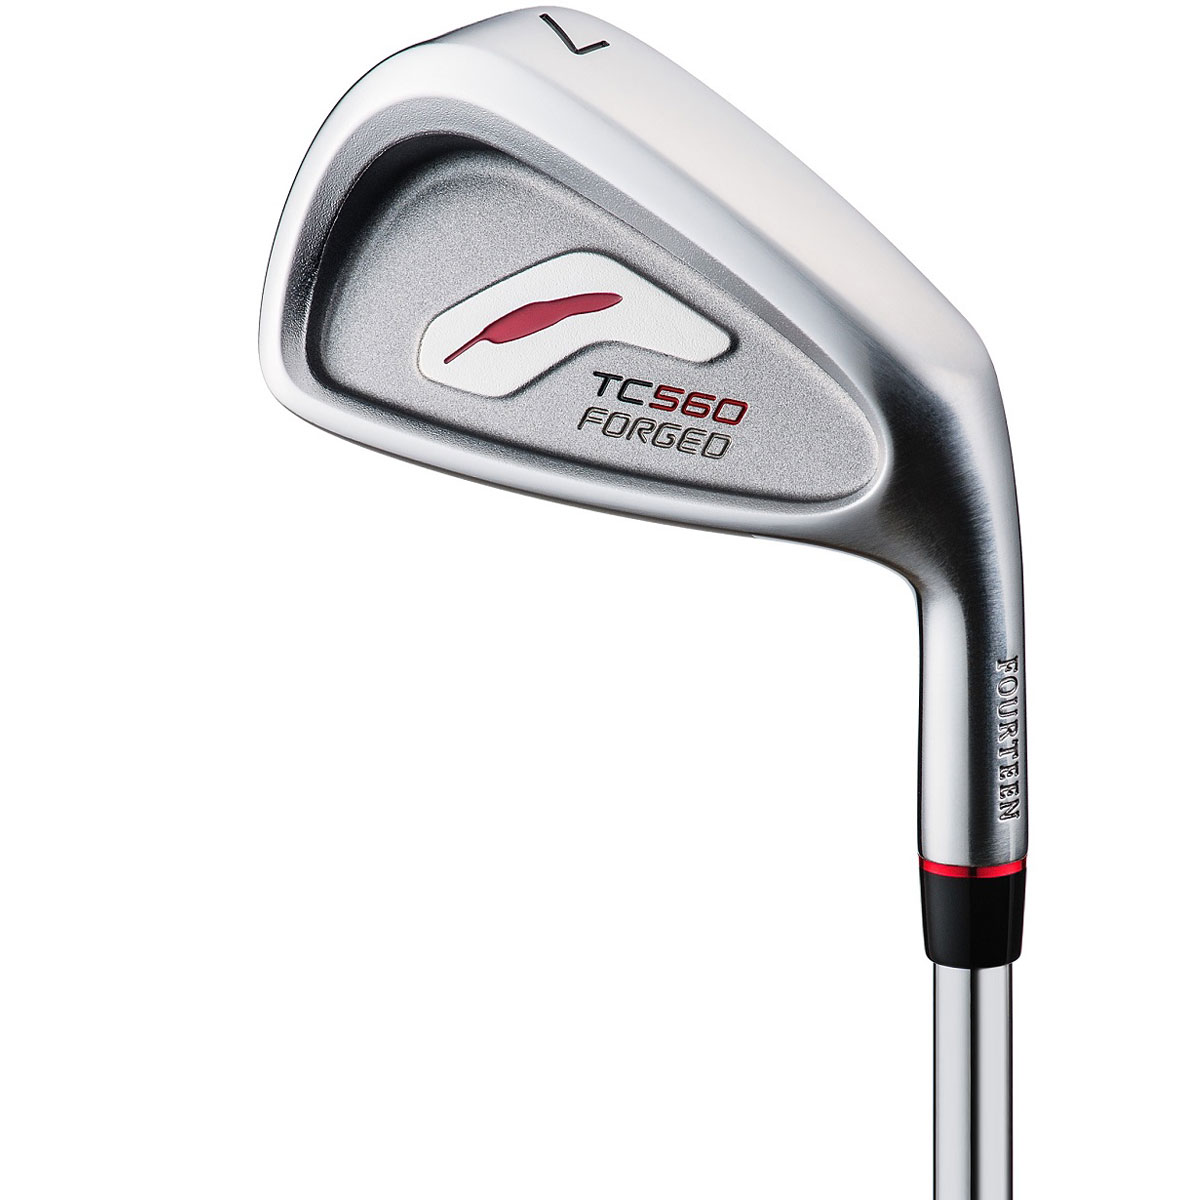 TC560 FORGED アイアン(6本セット) N.S.PRO 950GH HT